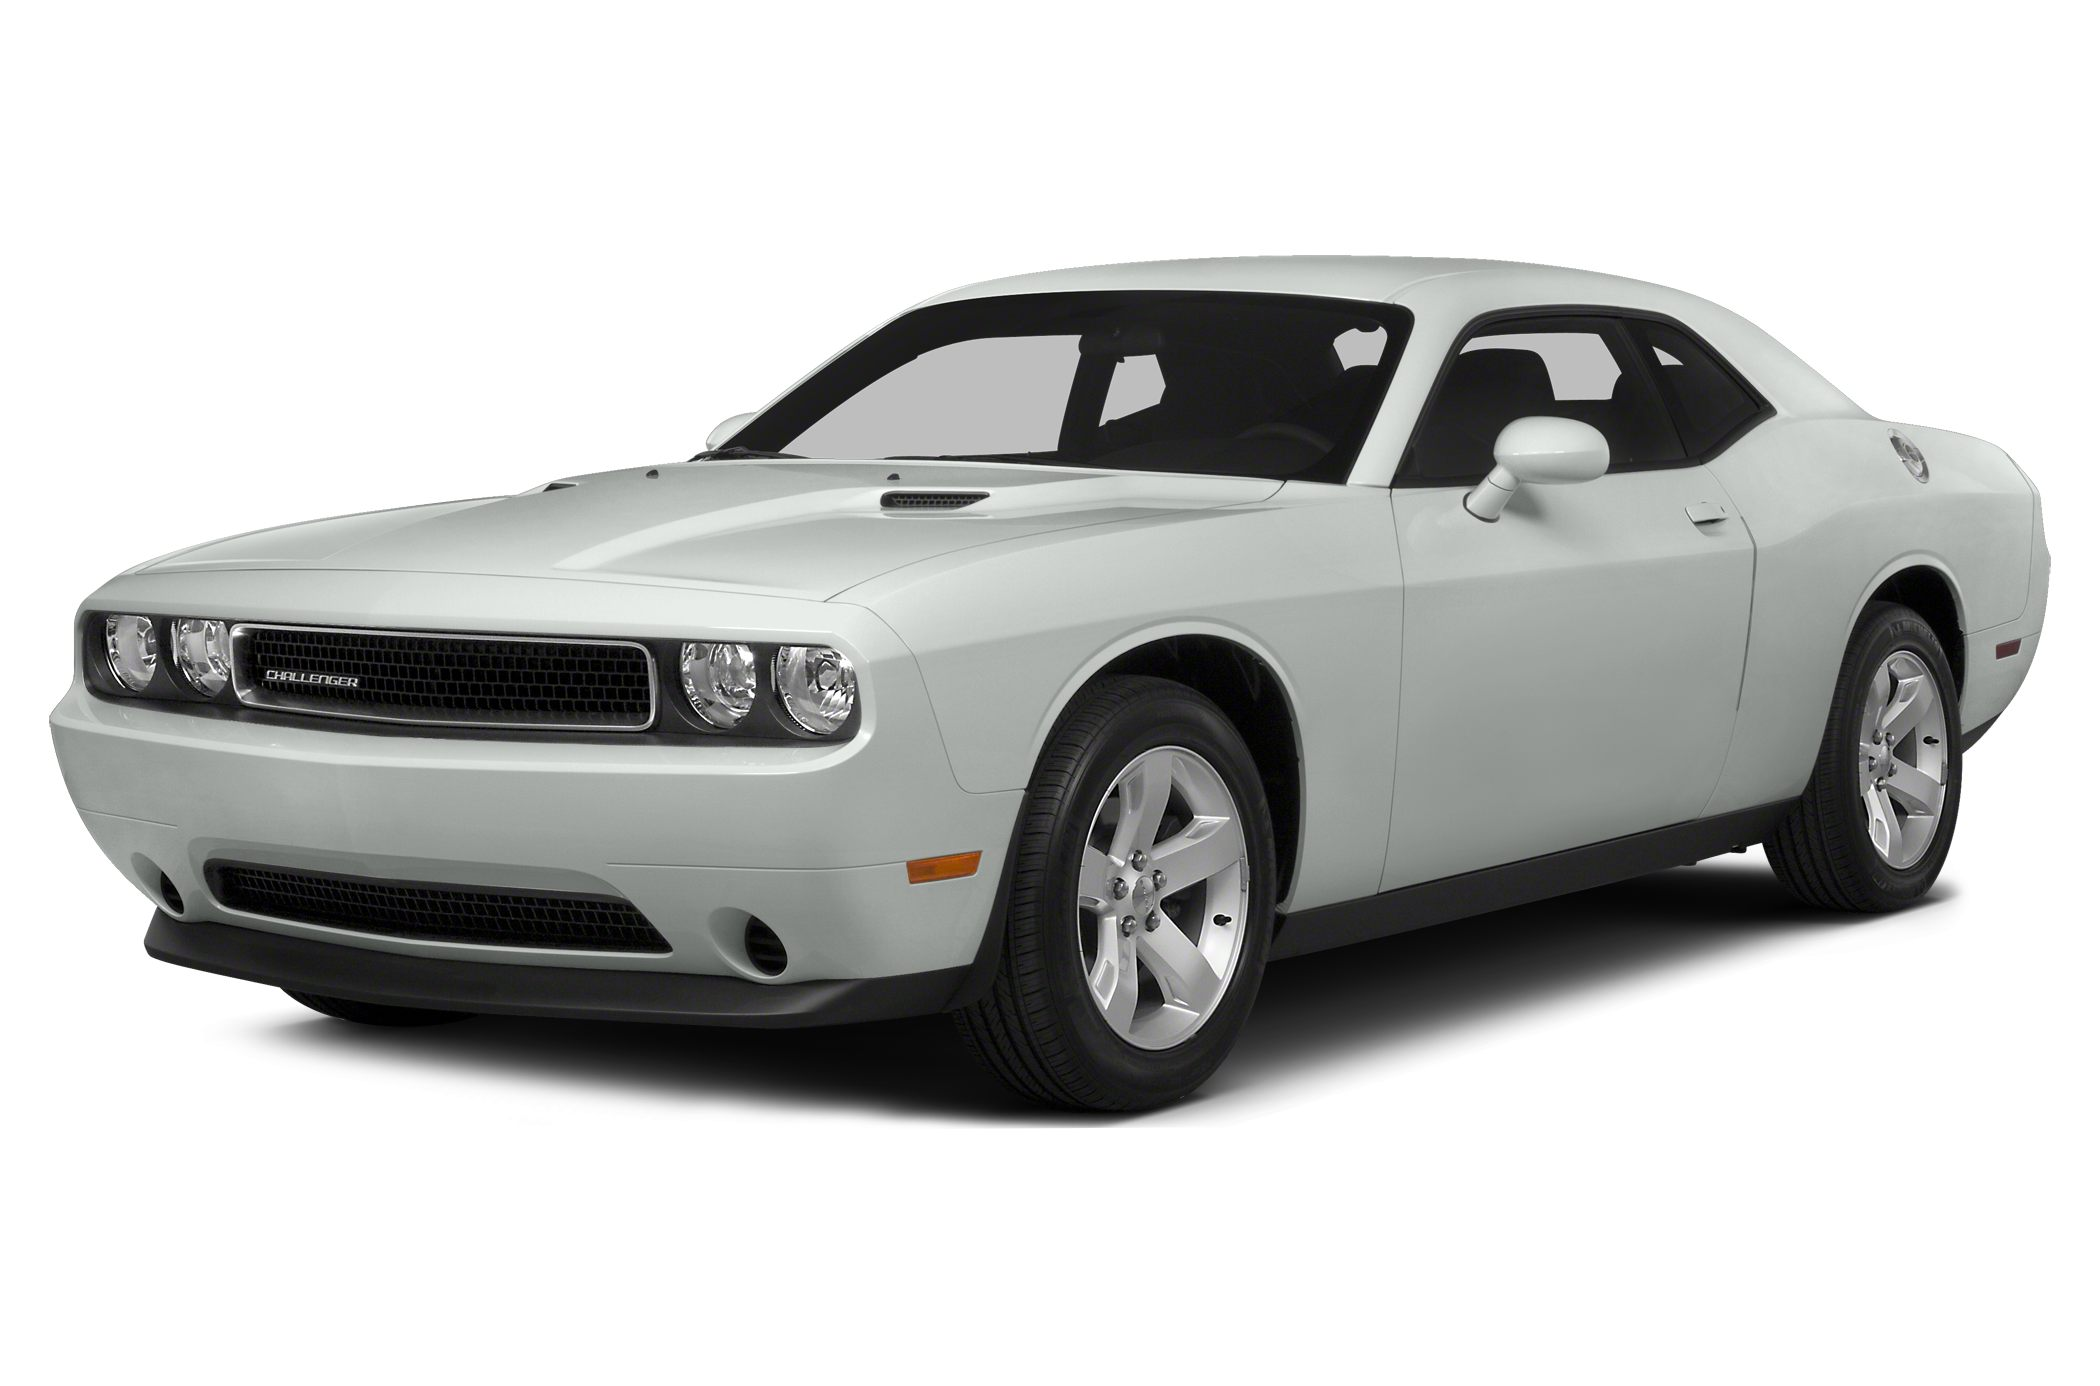 2014 Dodge Challenger SXT Coupe for sale in Bakersfield for $26,999 with 9,118 miles